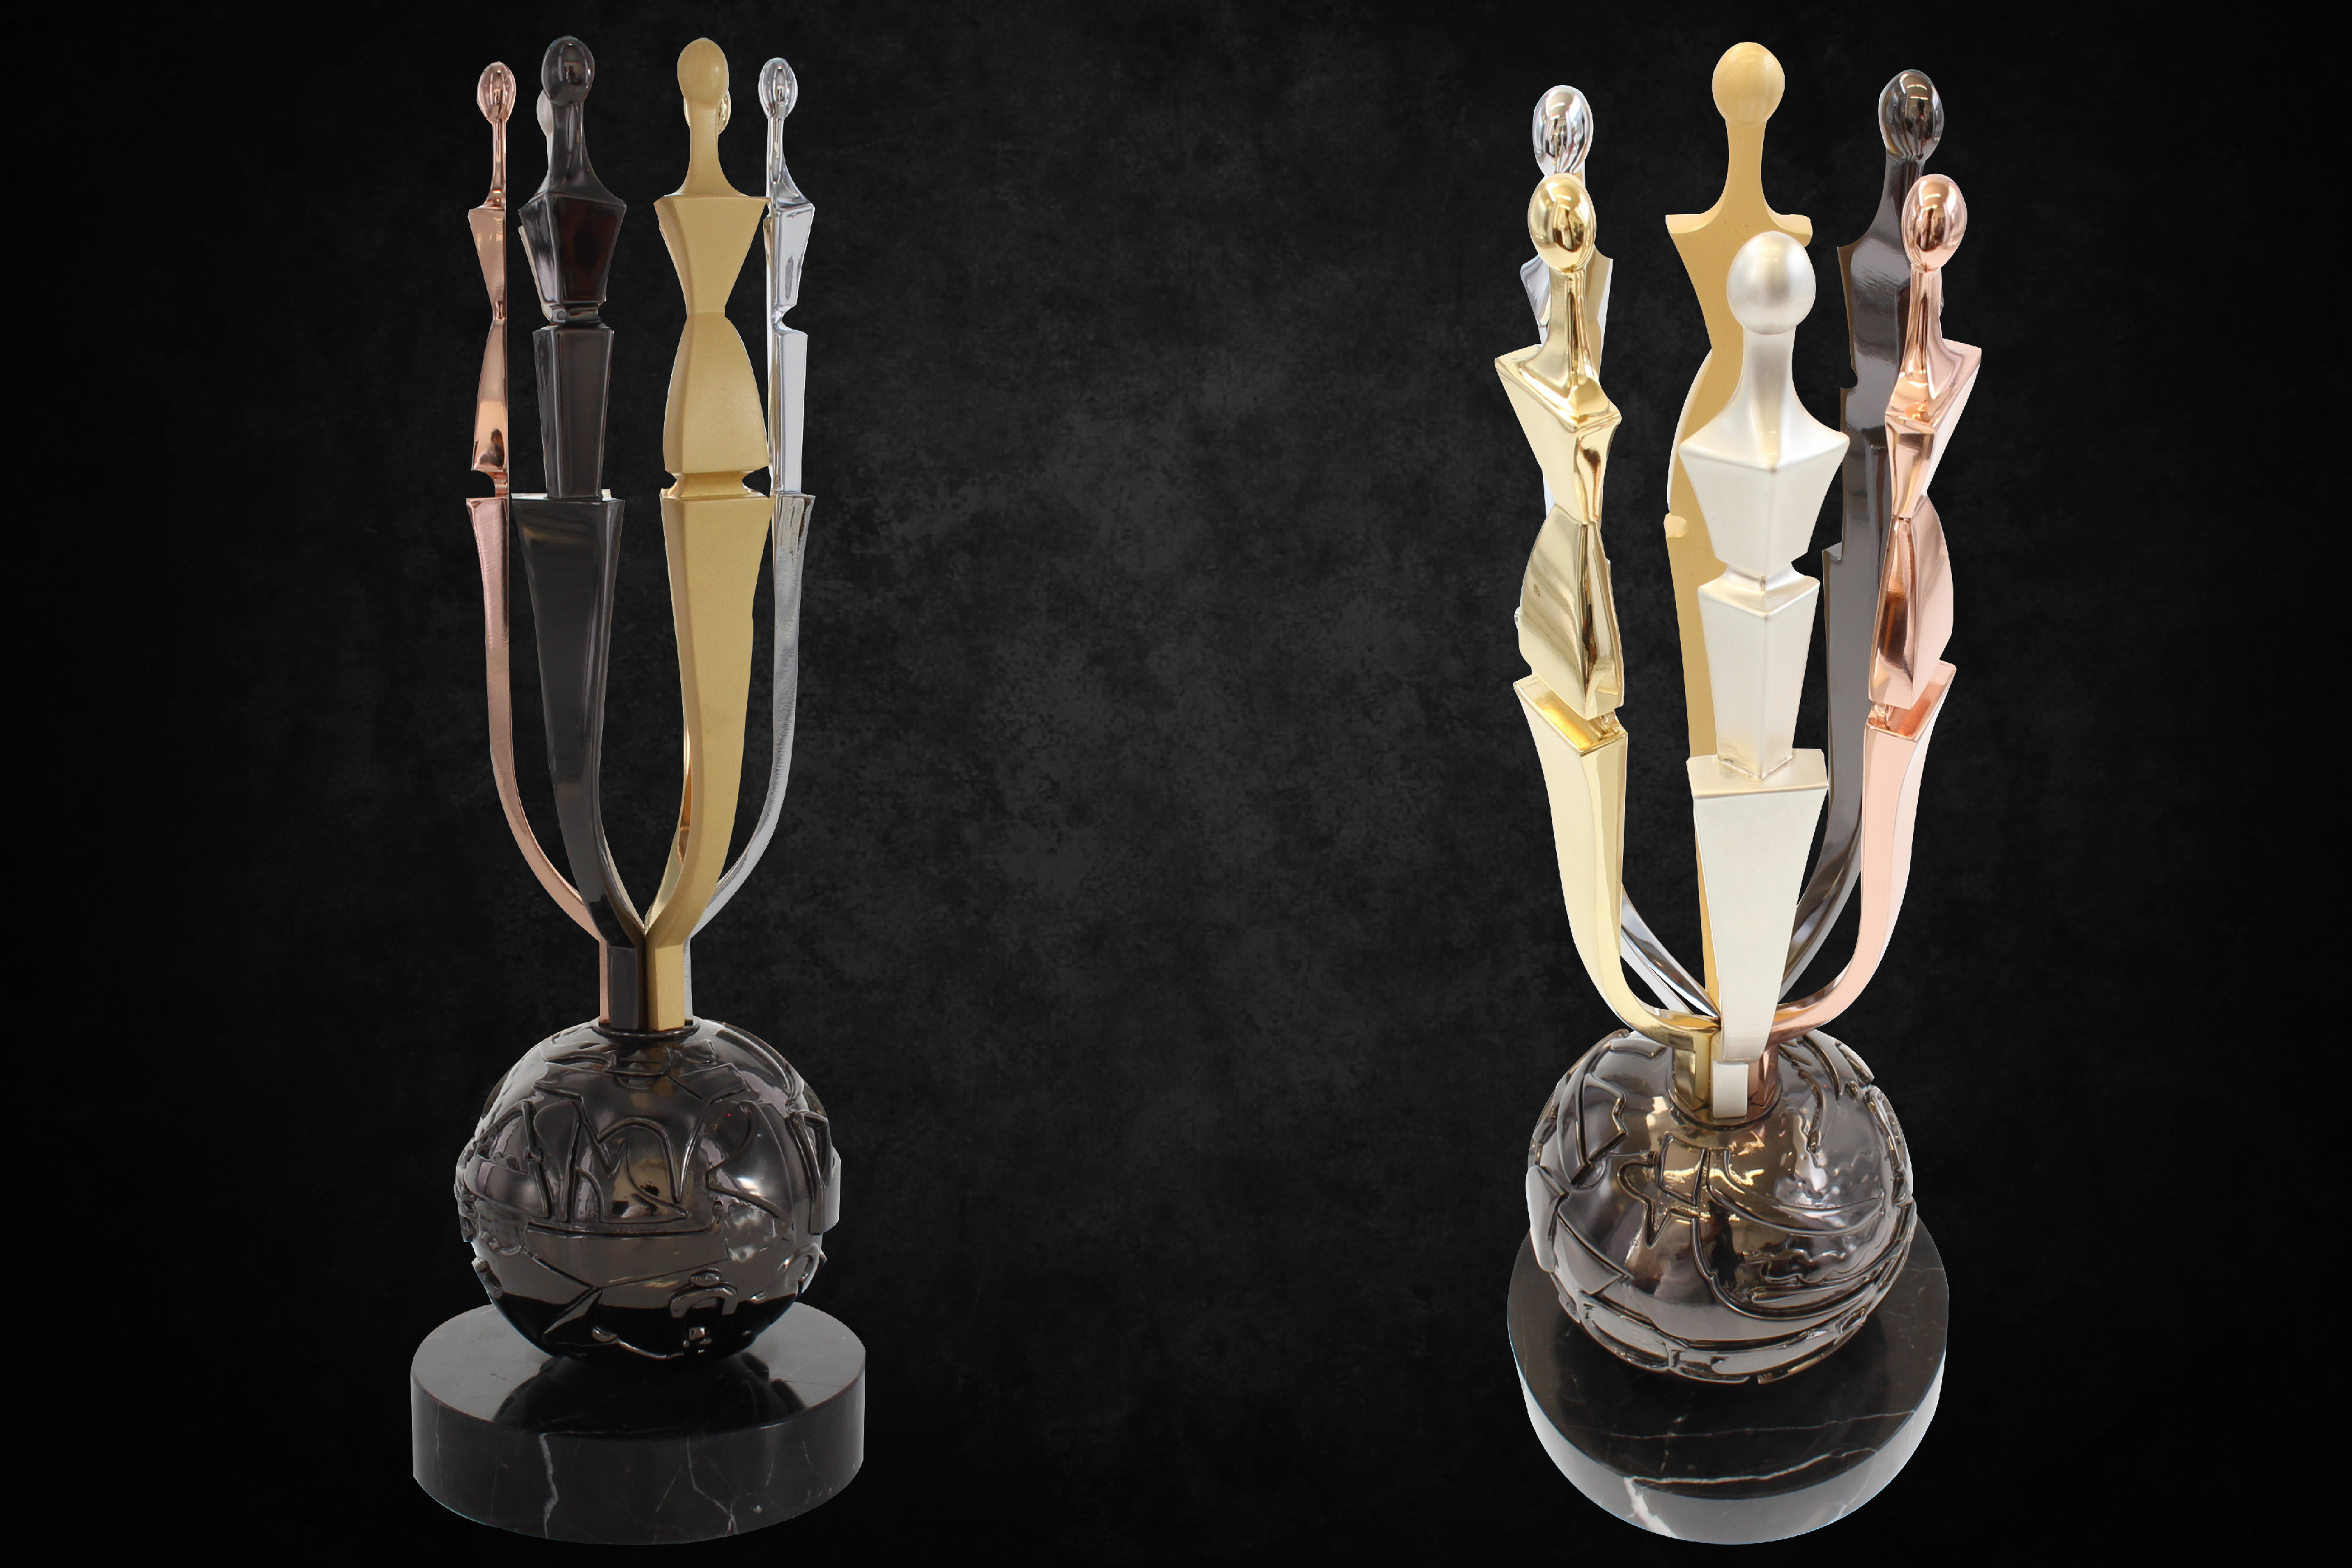 AAFA American Image Awards trophy, a marble base with a black chrome globe, 6 abstact figures emerging from the top